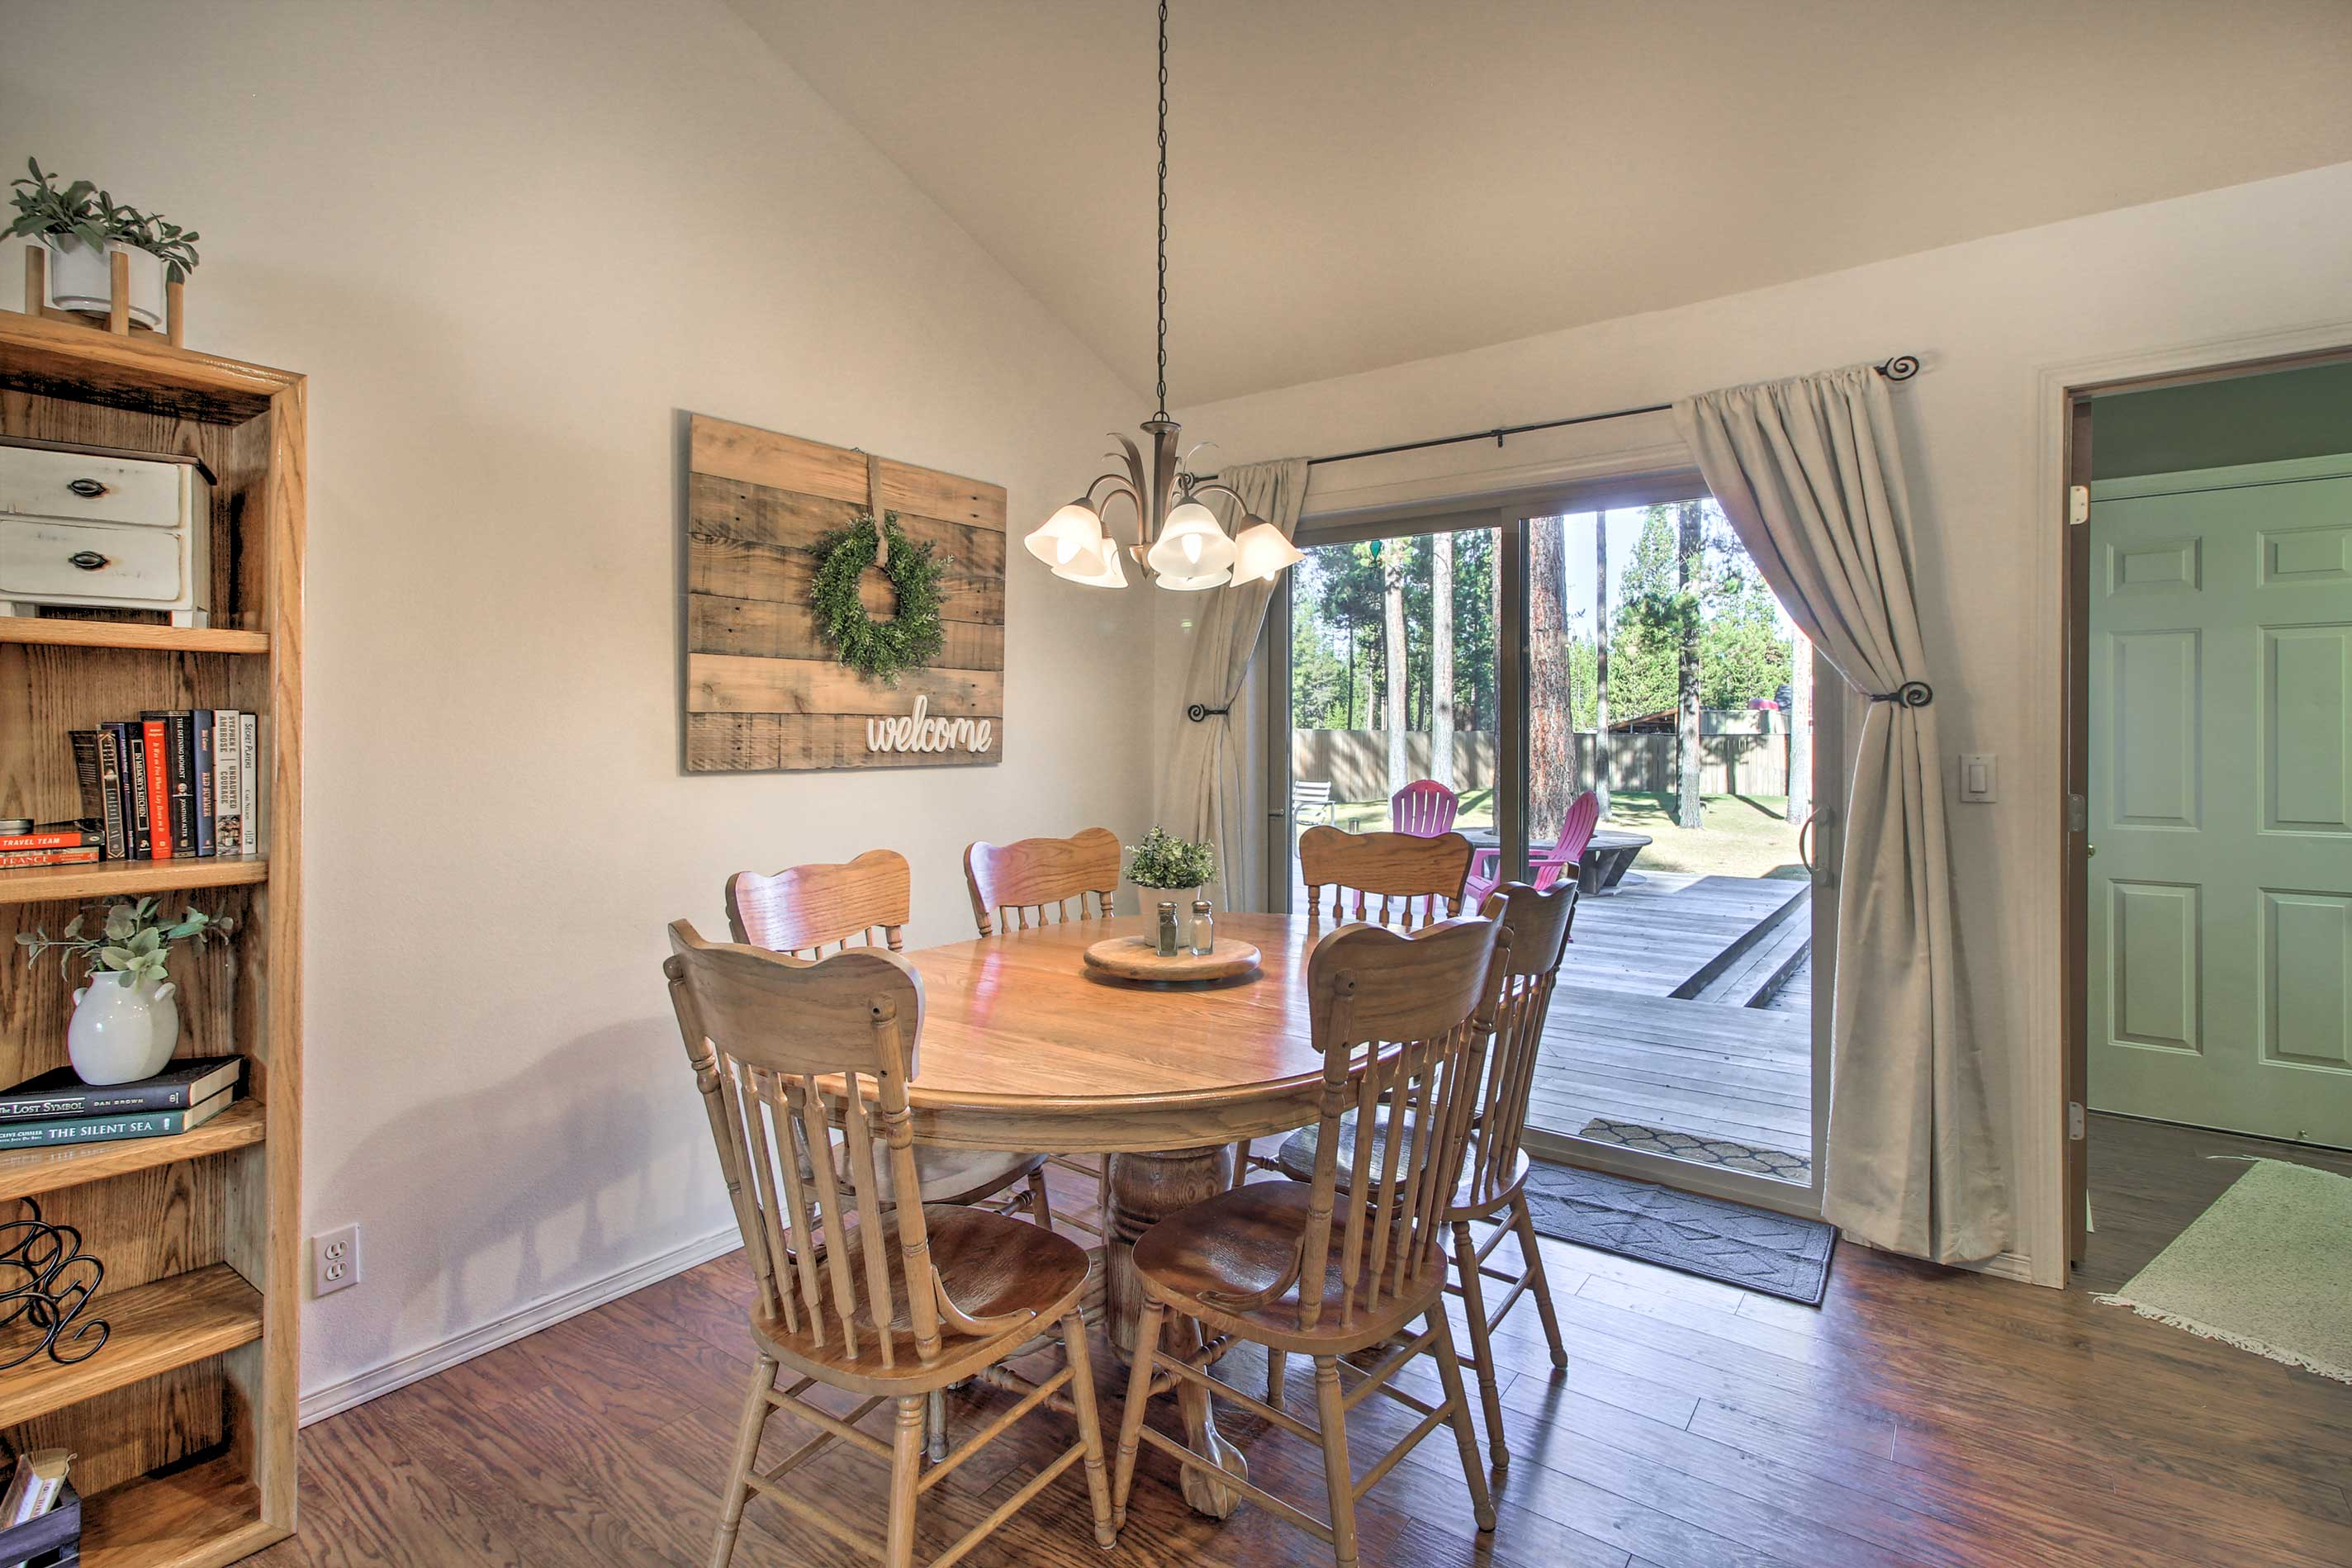 Share a home-cooked meal around the wooden dining table.